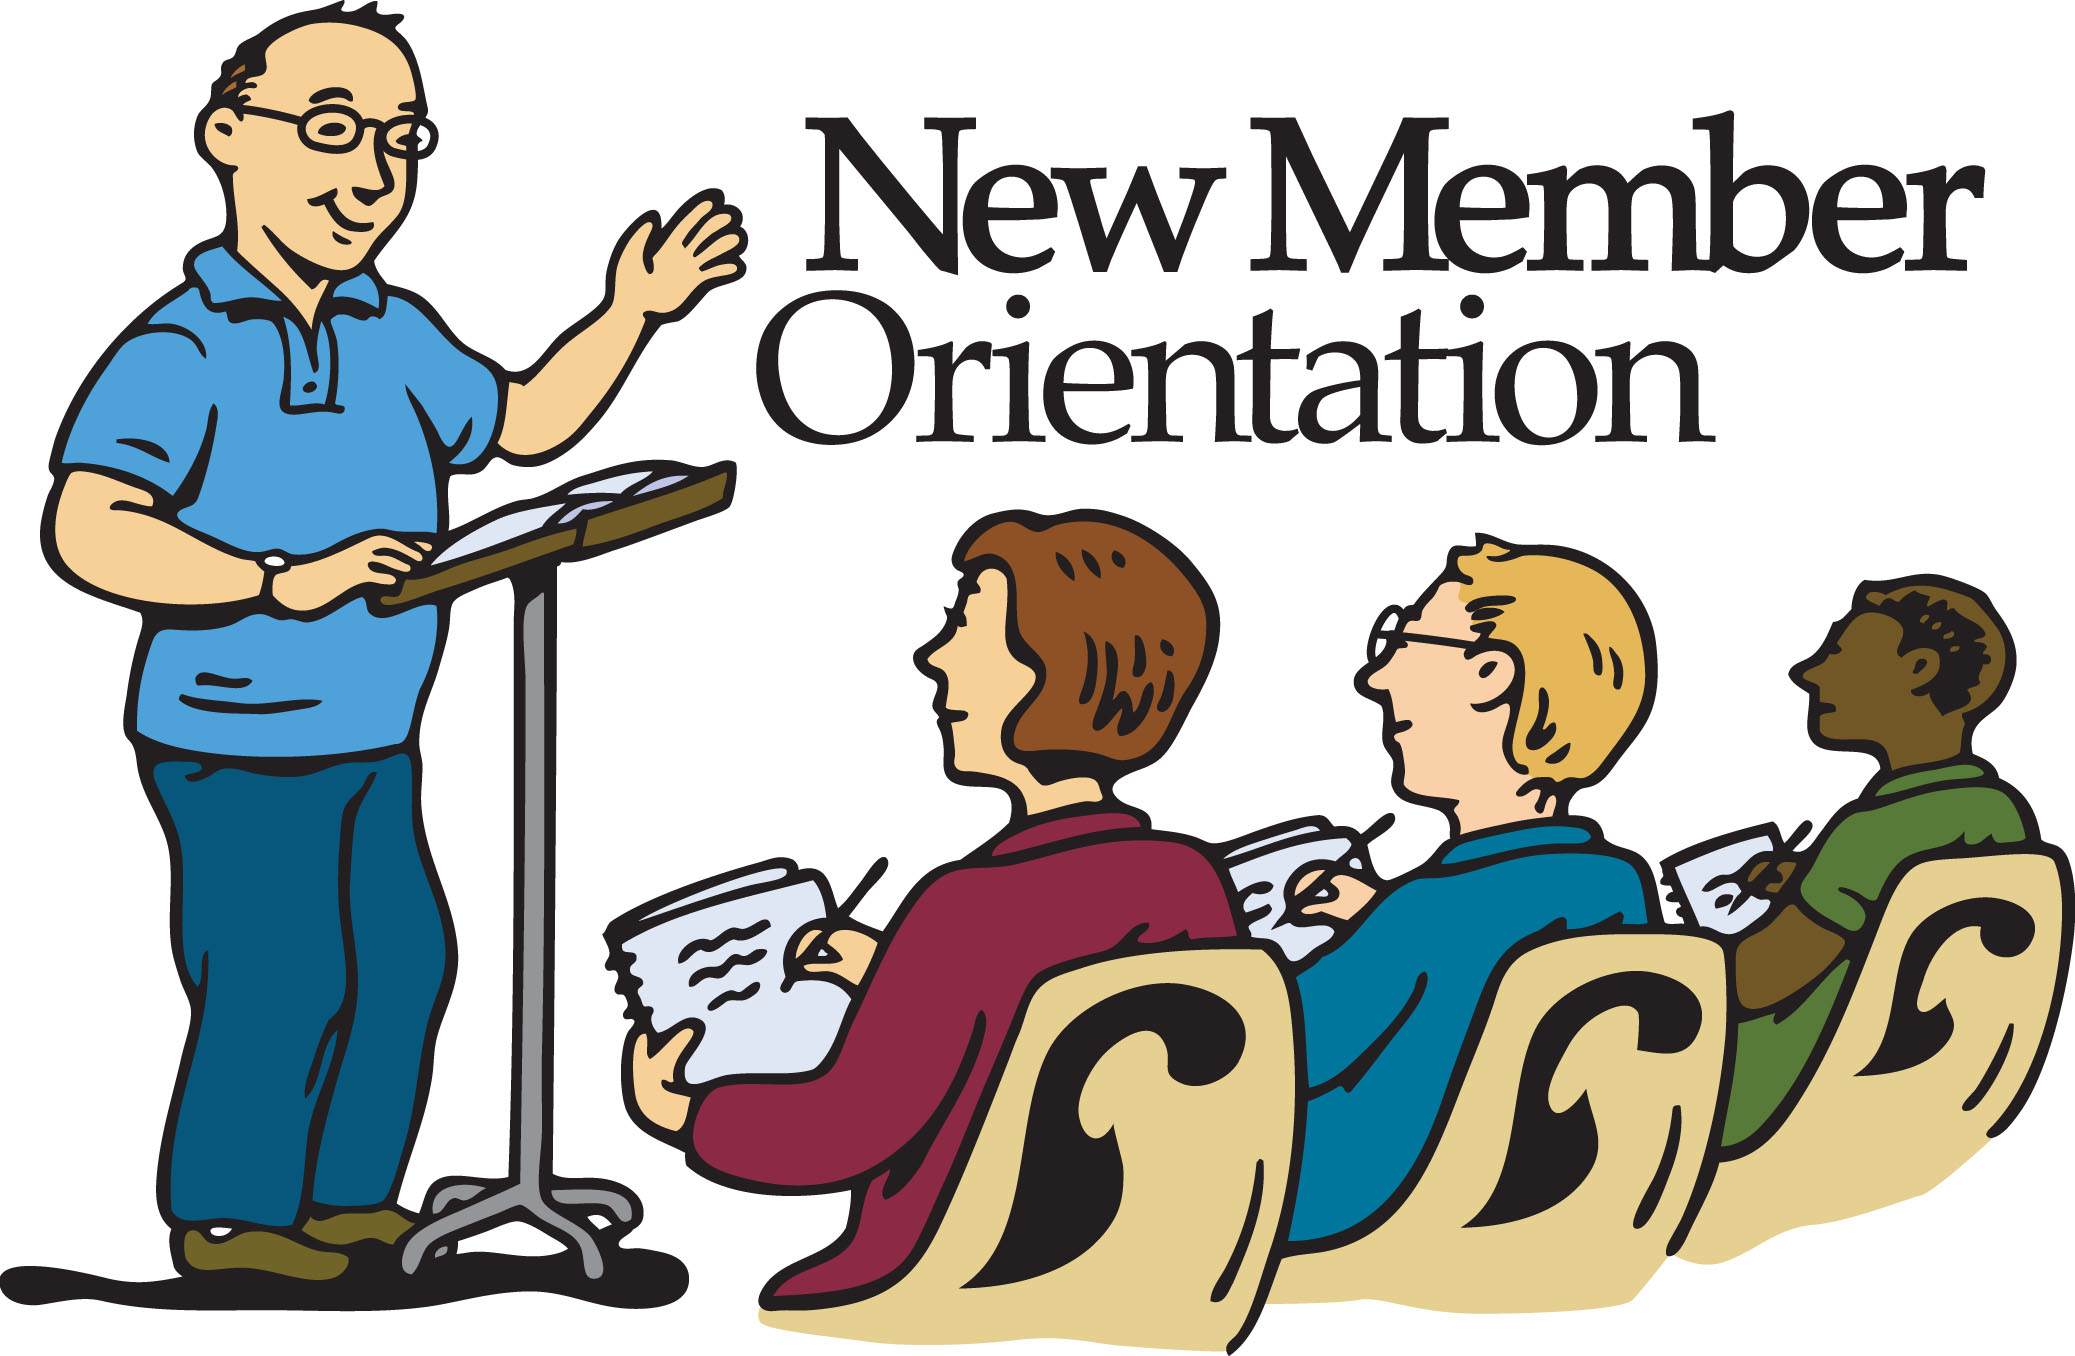 New Members Orientation Clipart - Clipart Kid